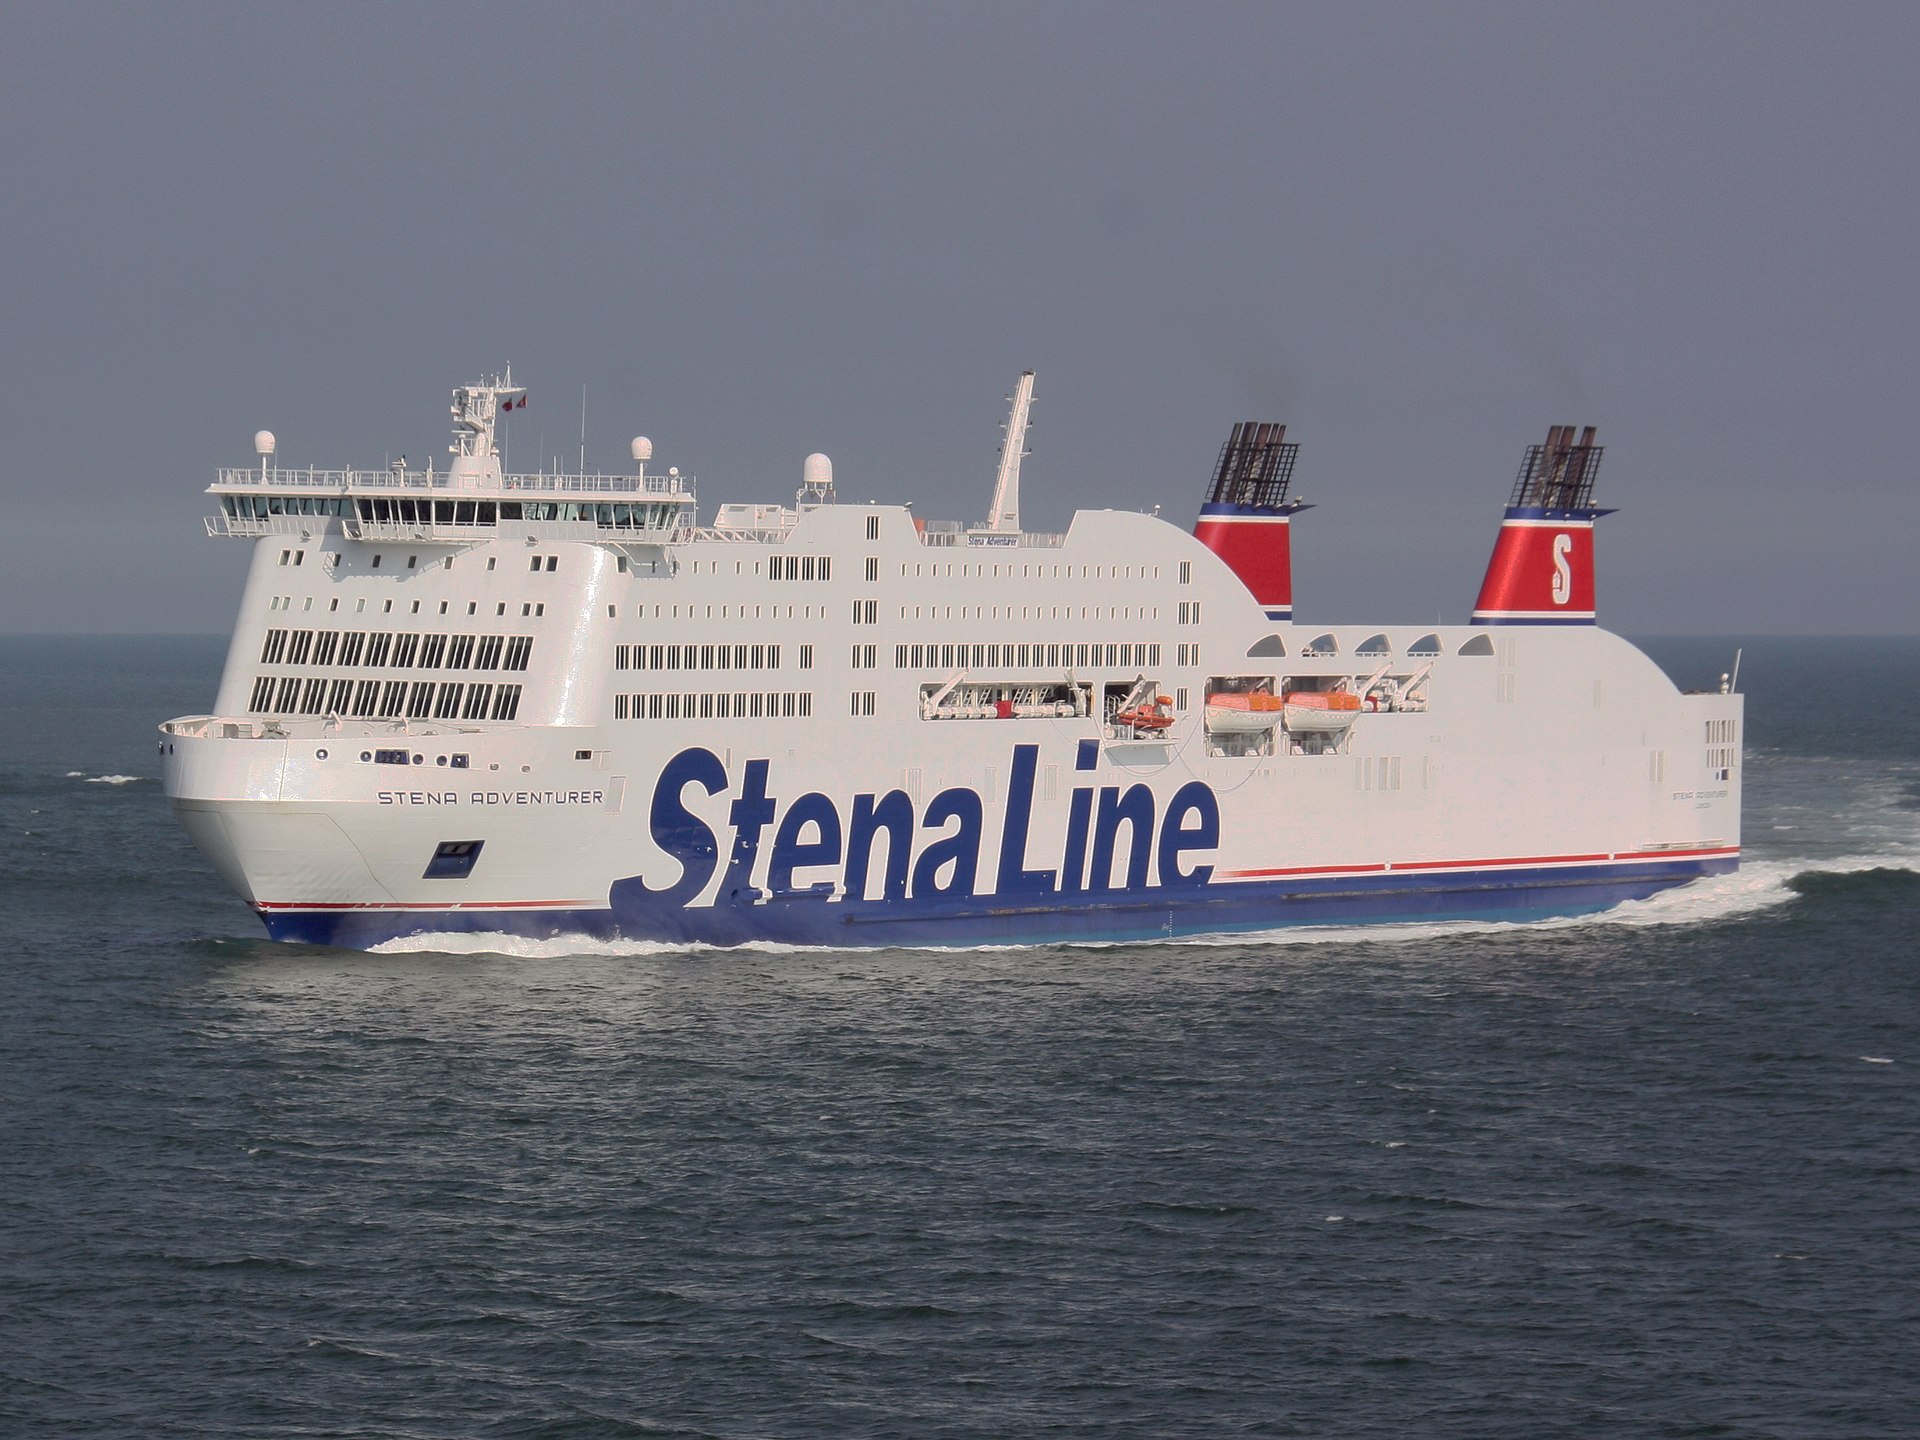 stena line wikipedia. Black Bedroom Furniture Sets. Home Design Ideas